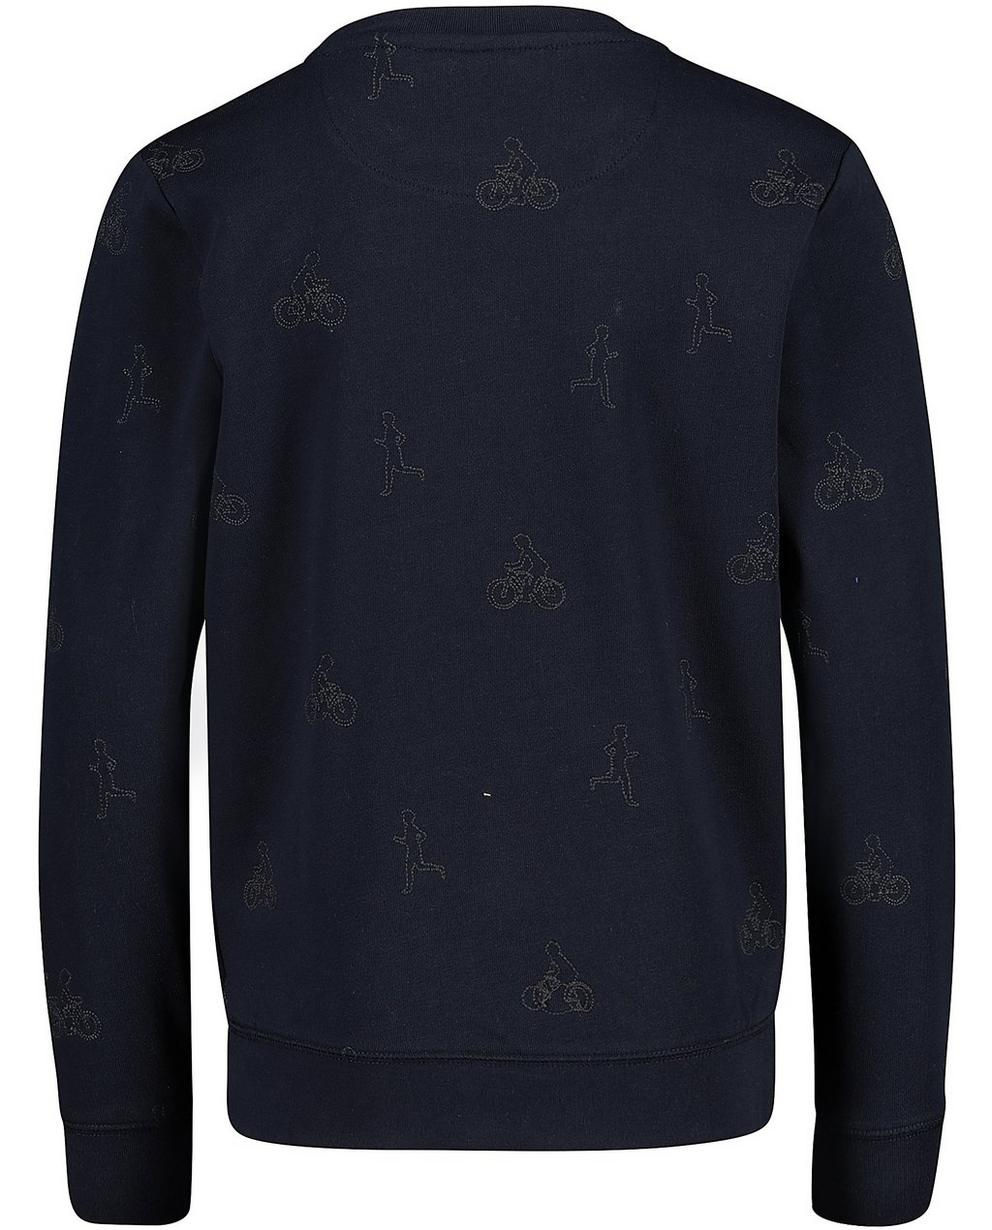 Sweater - Navy - Sweater mit gesticktem Print